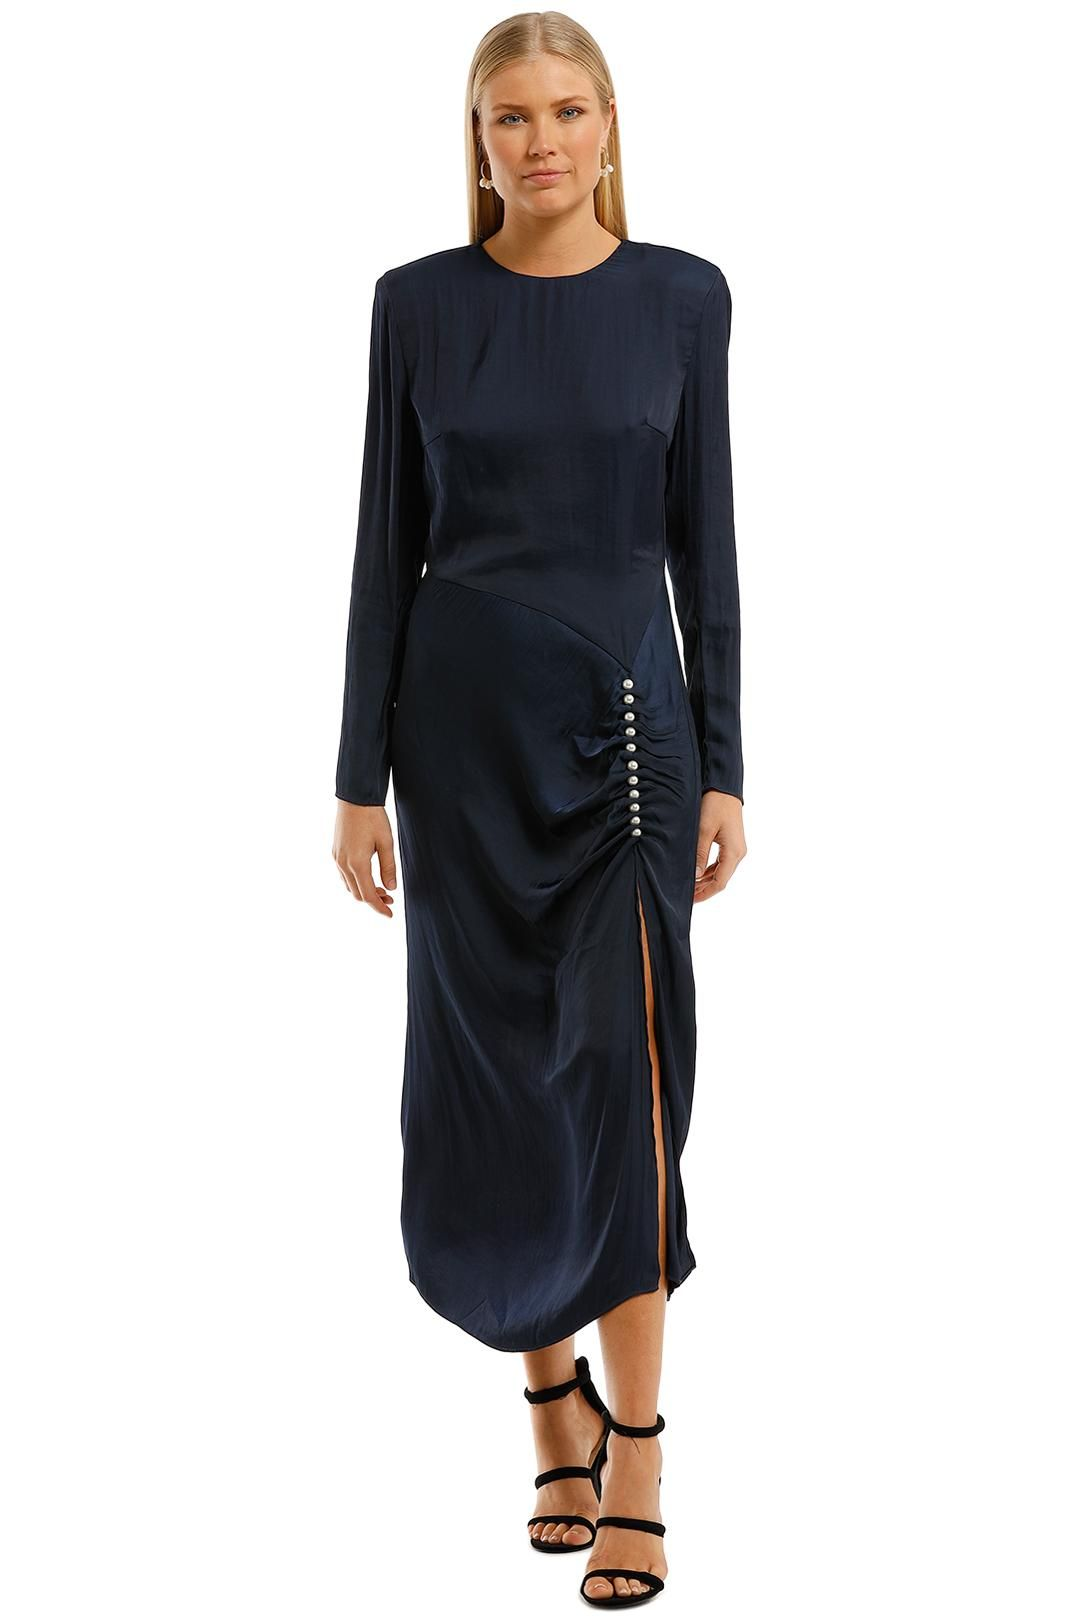 Elliatt Ministry Dress Navy Long Sleeve